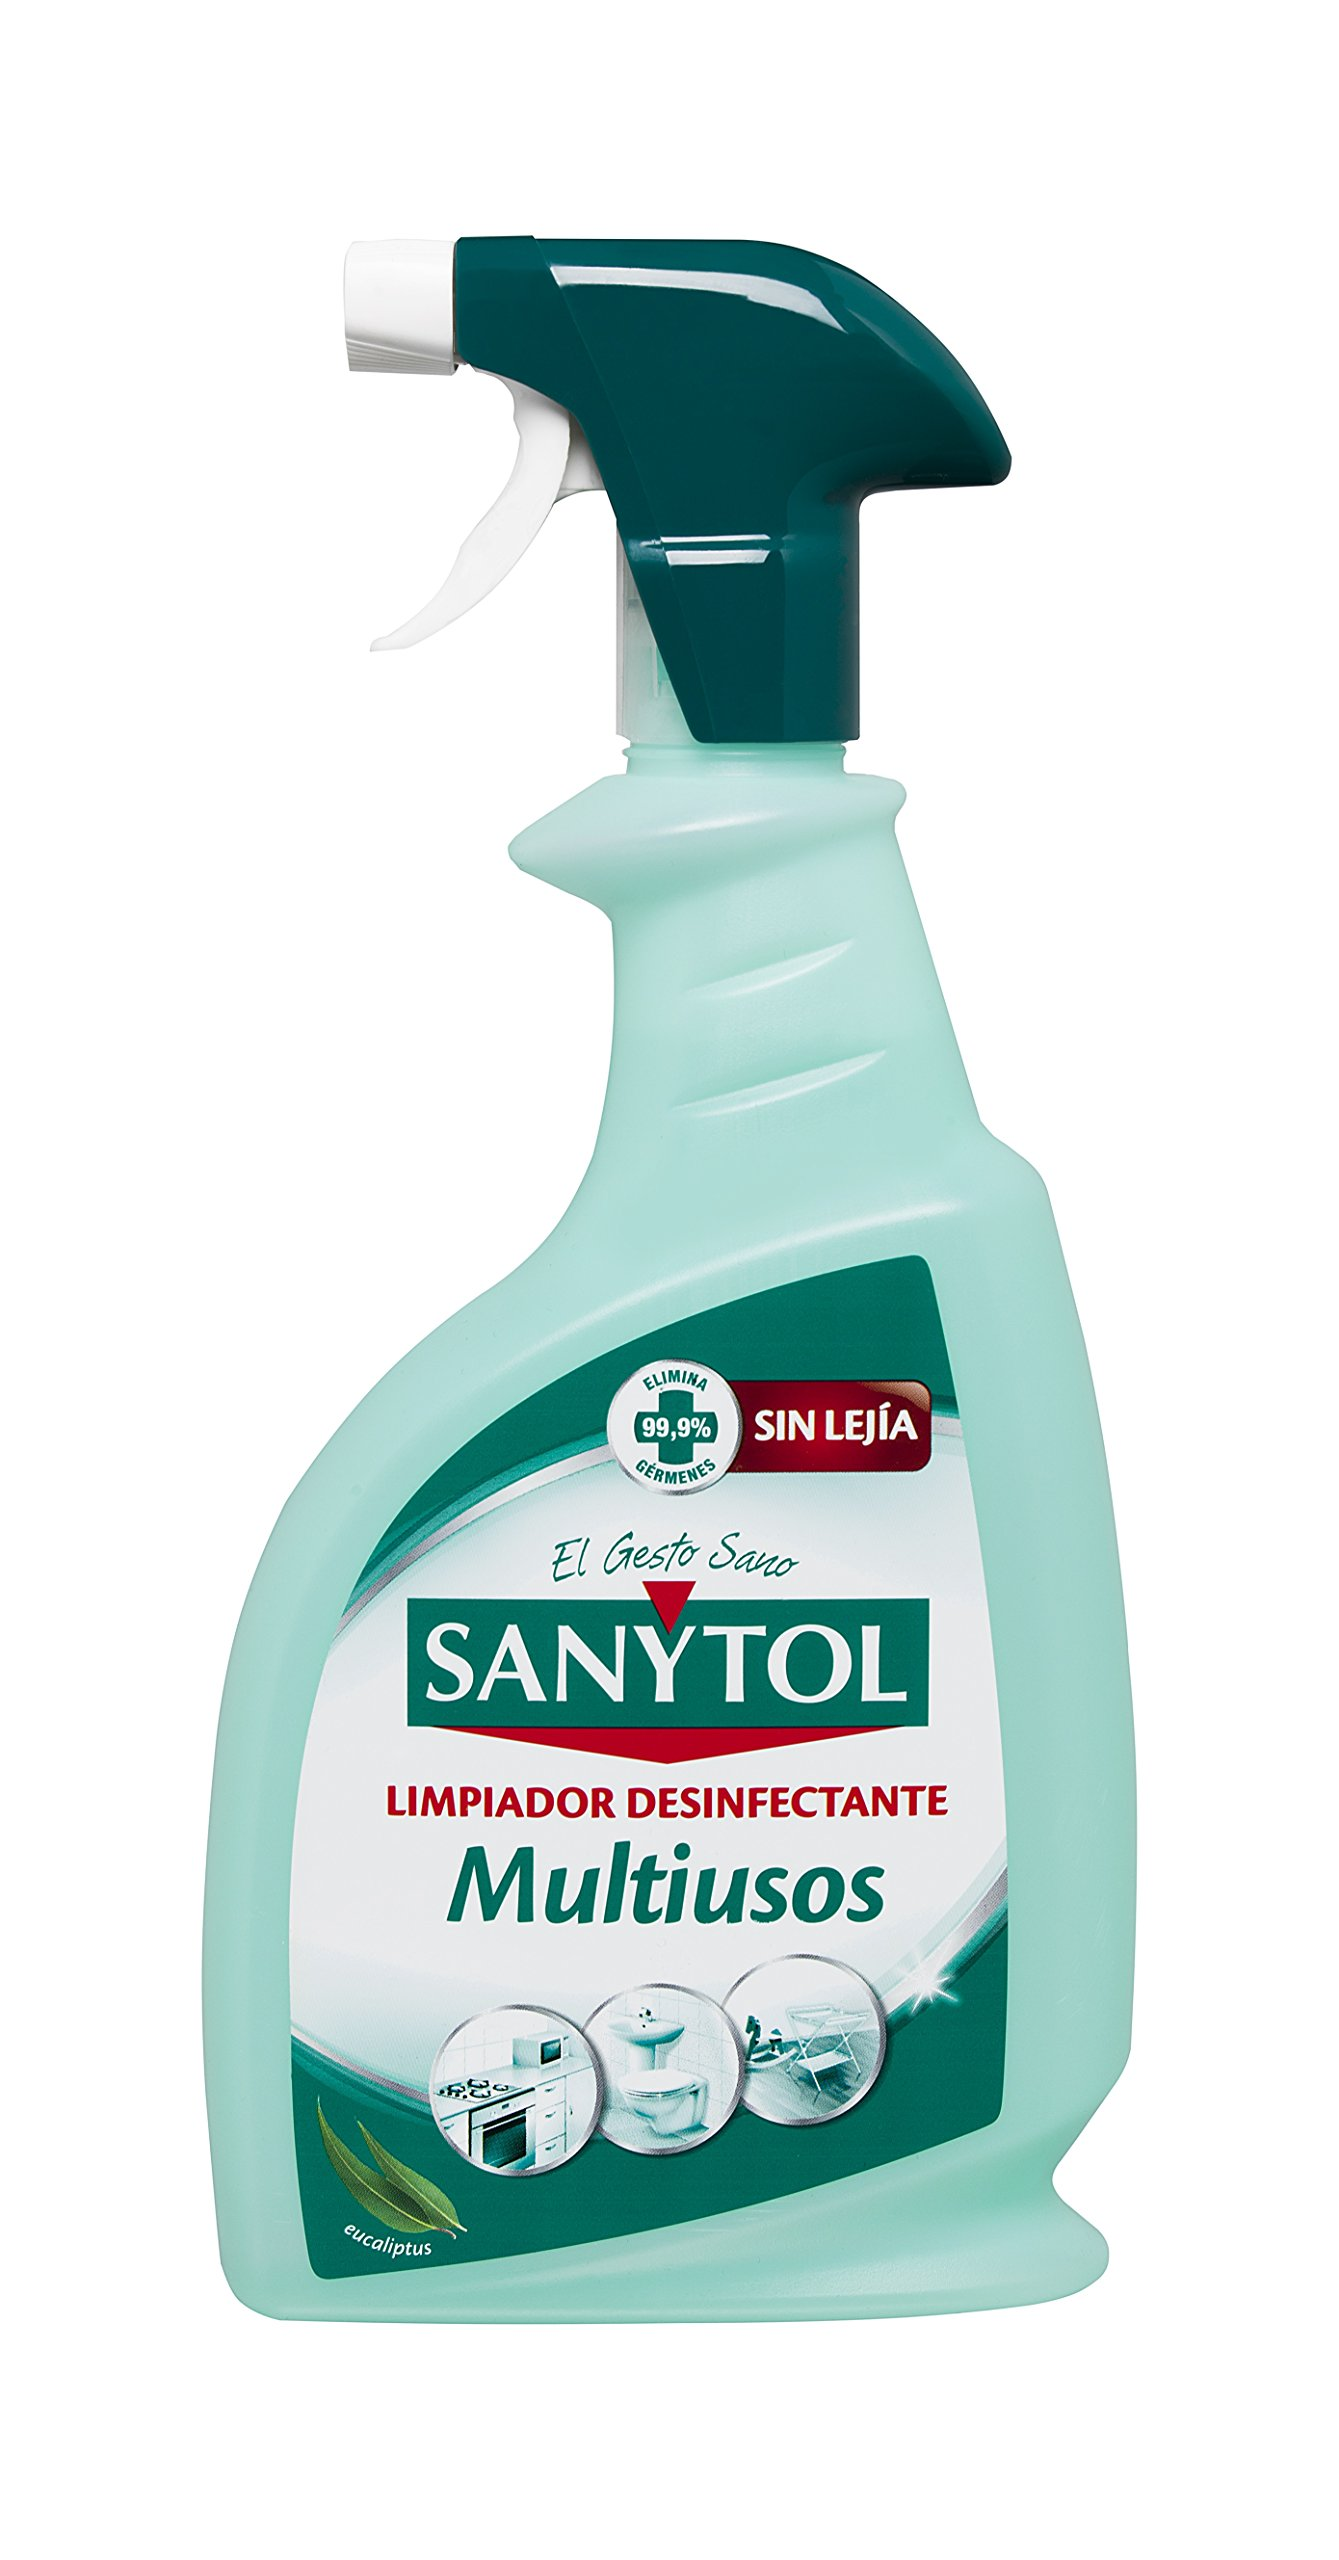 Sanytol - Limpiador Desinfectante Multiusos en Pistola, Todas las Superficies - 750 ml product image